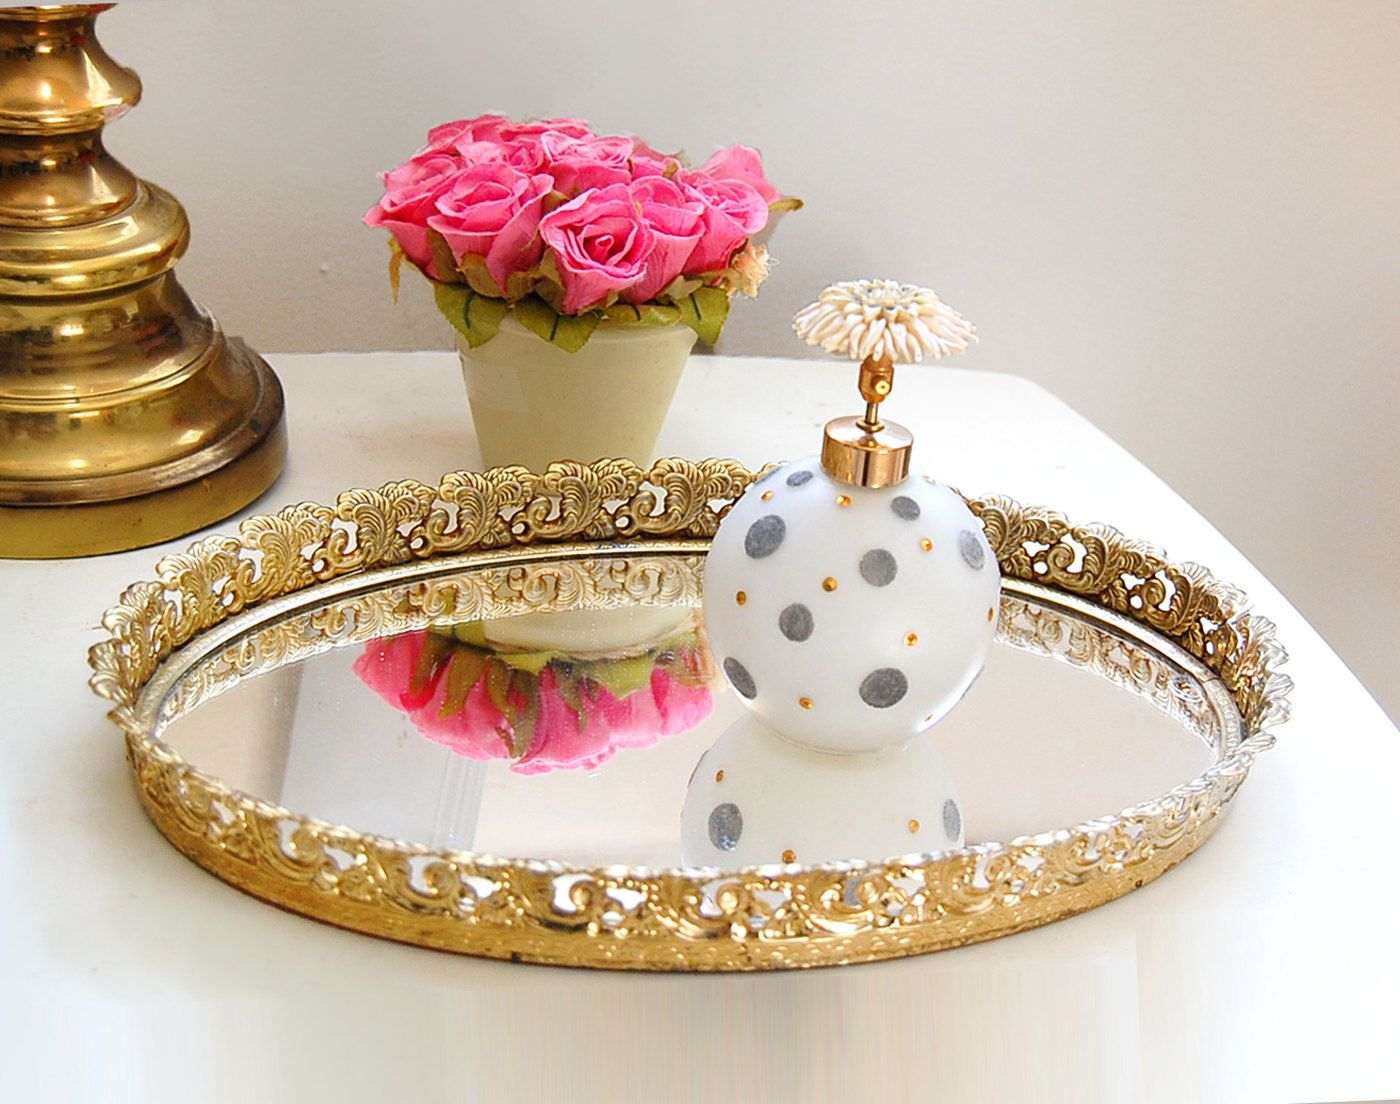 Gold vanity trayi want one like this for my vanity decor details